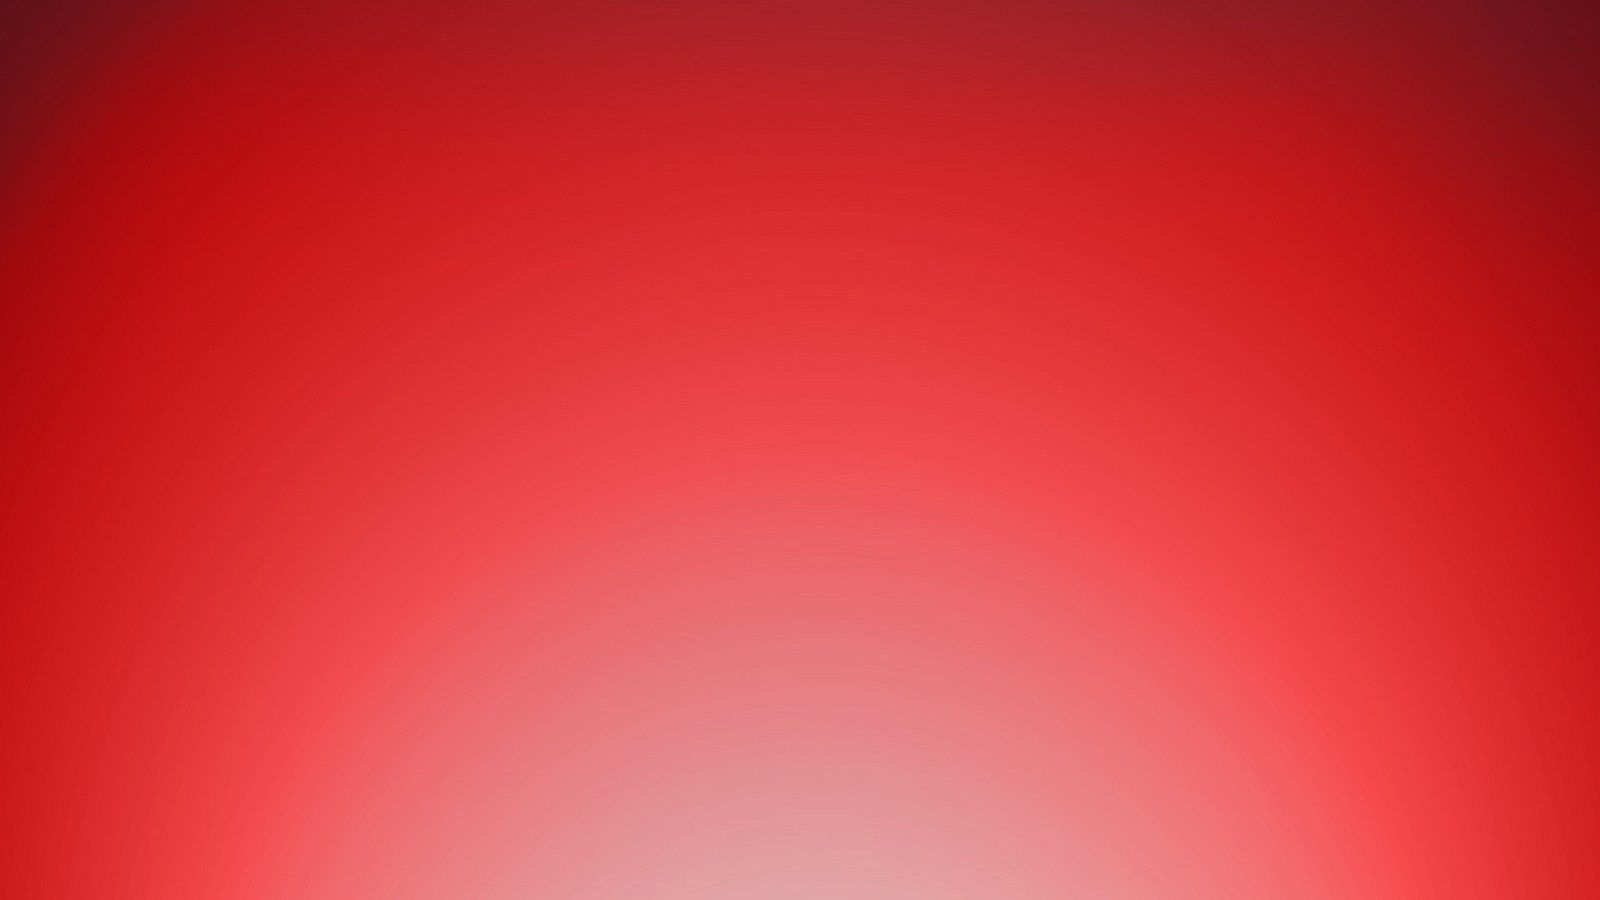 Red background Texture Free Downloads